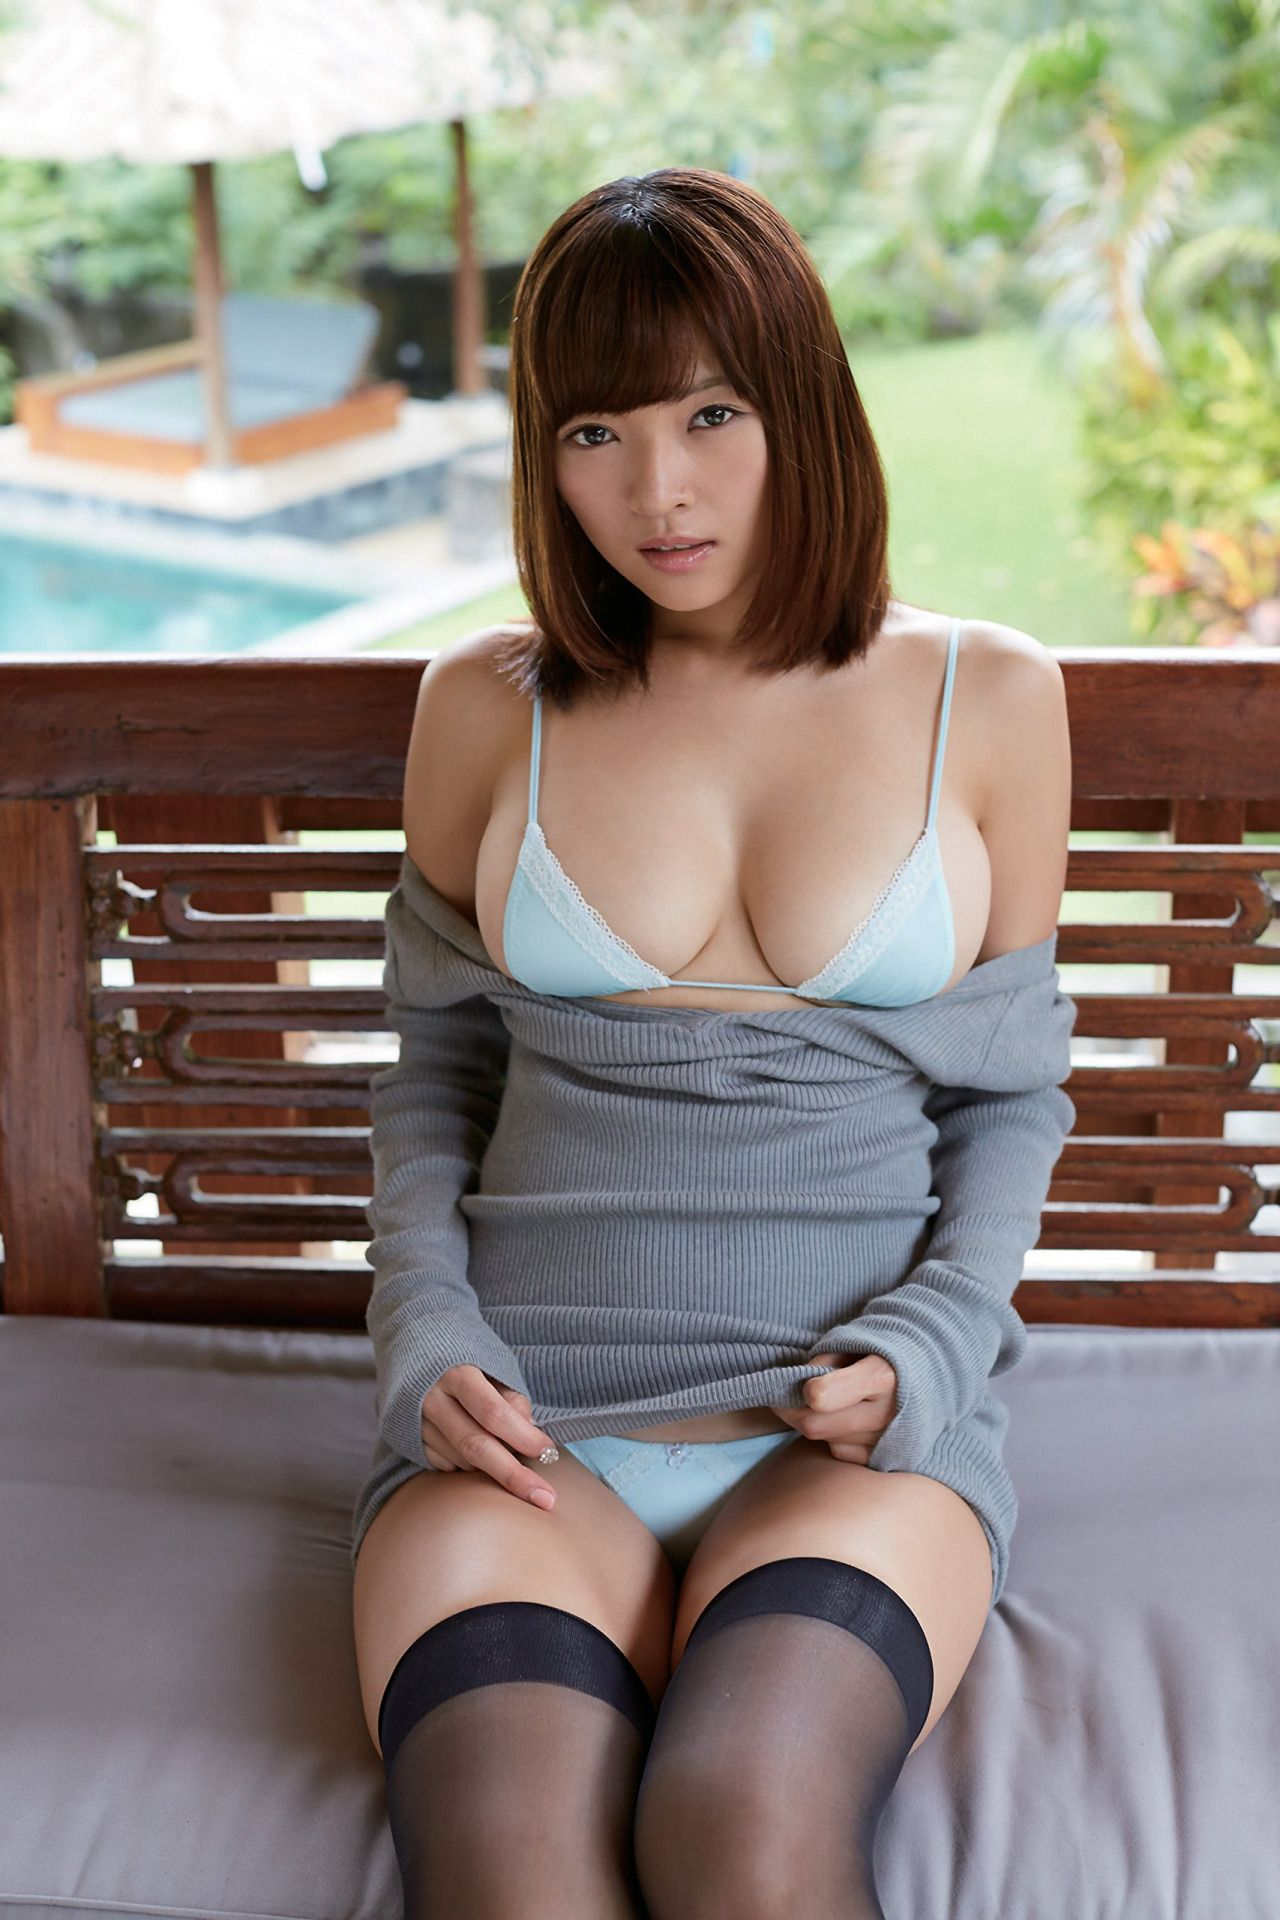 Mortgage pose spread her breasts photographer